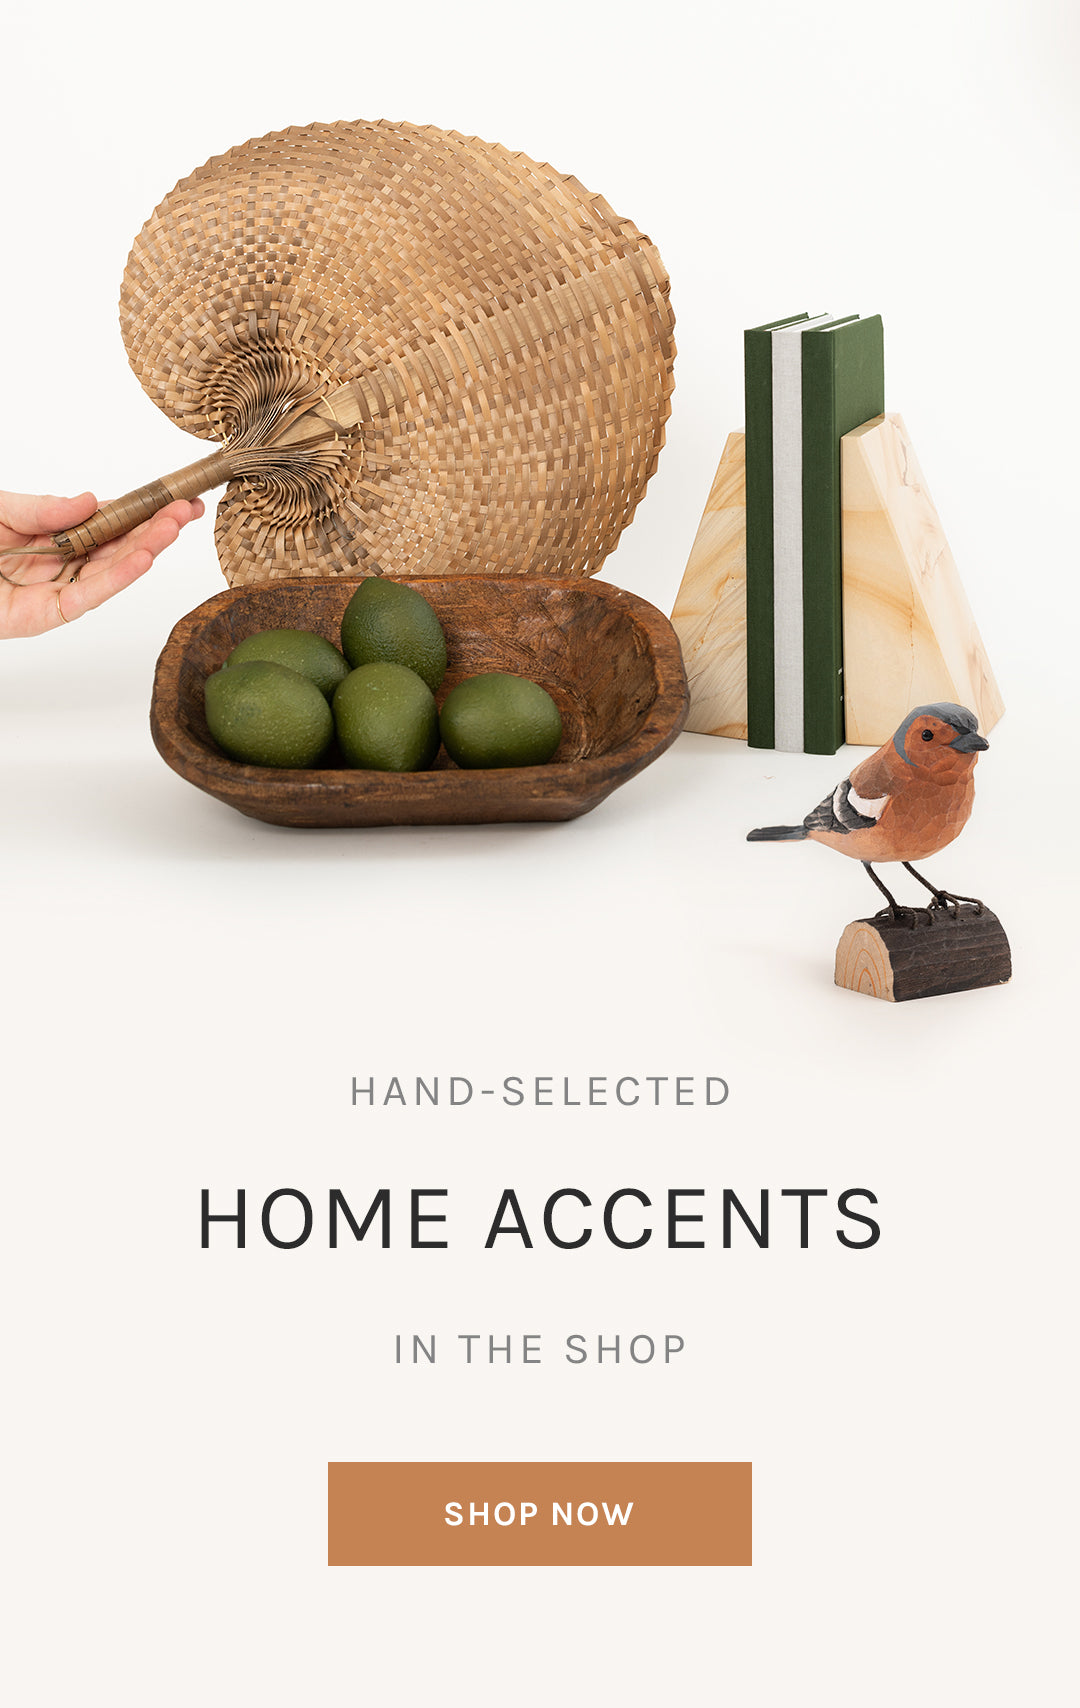 Hand-Selected Home Accents in the Shop